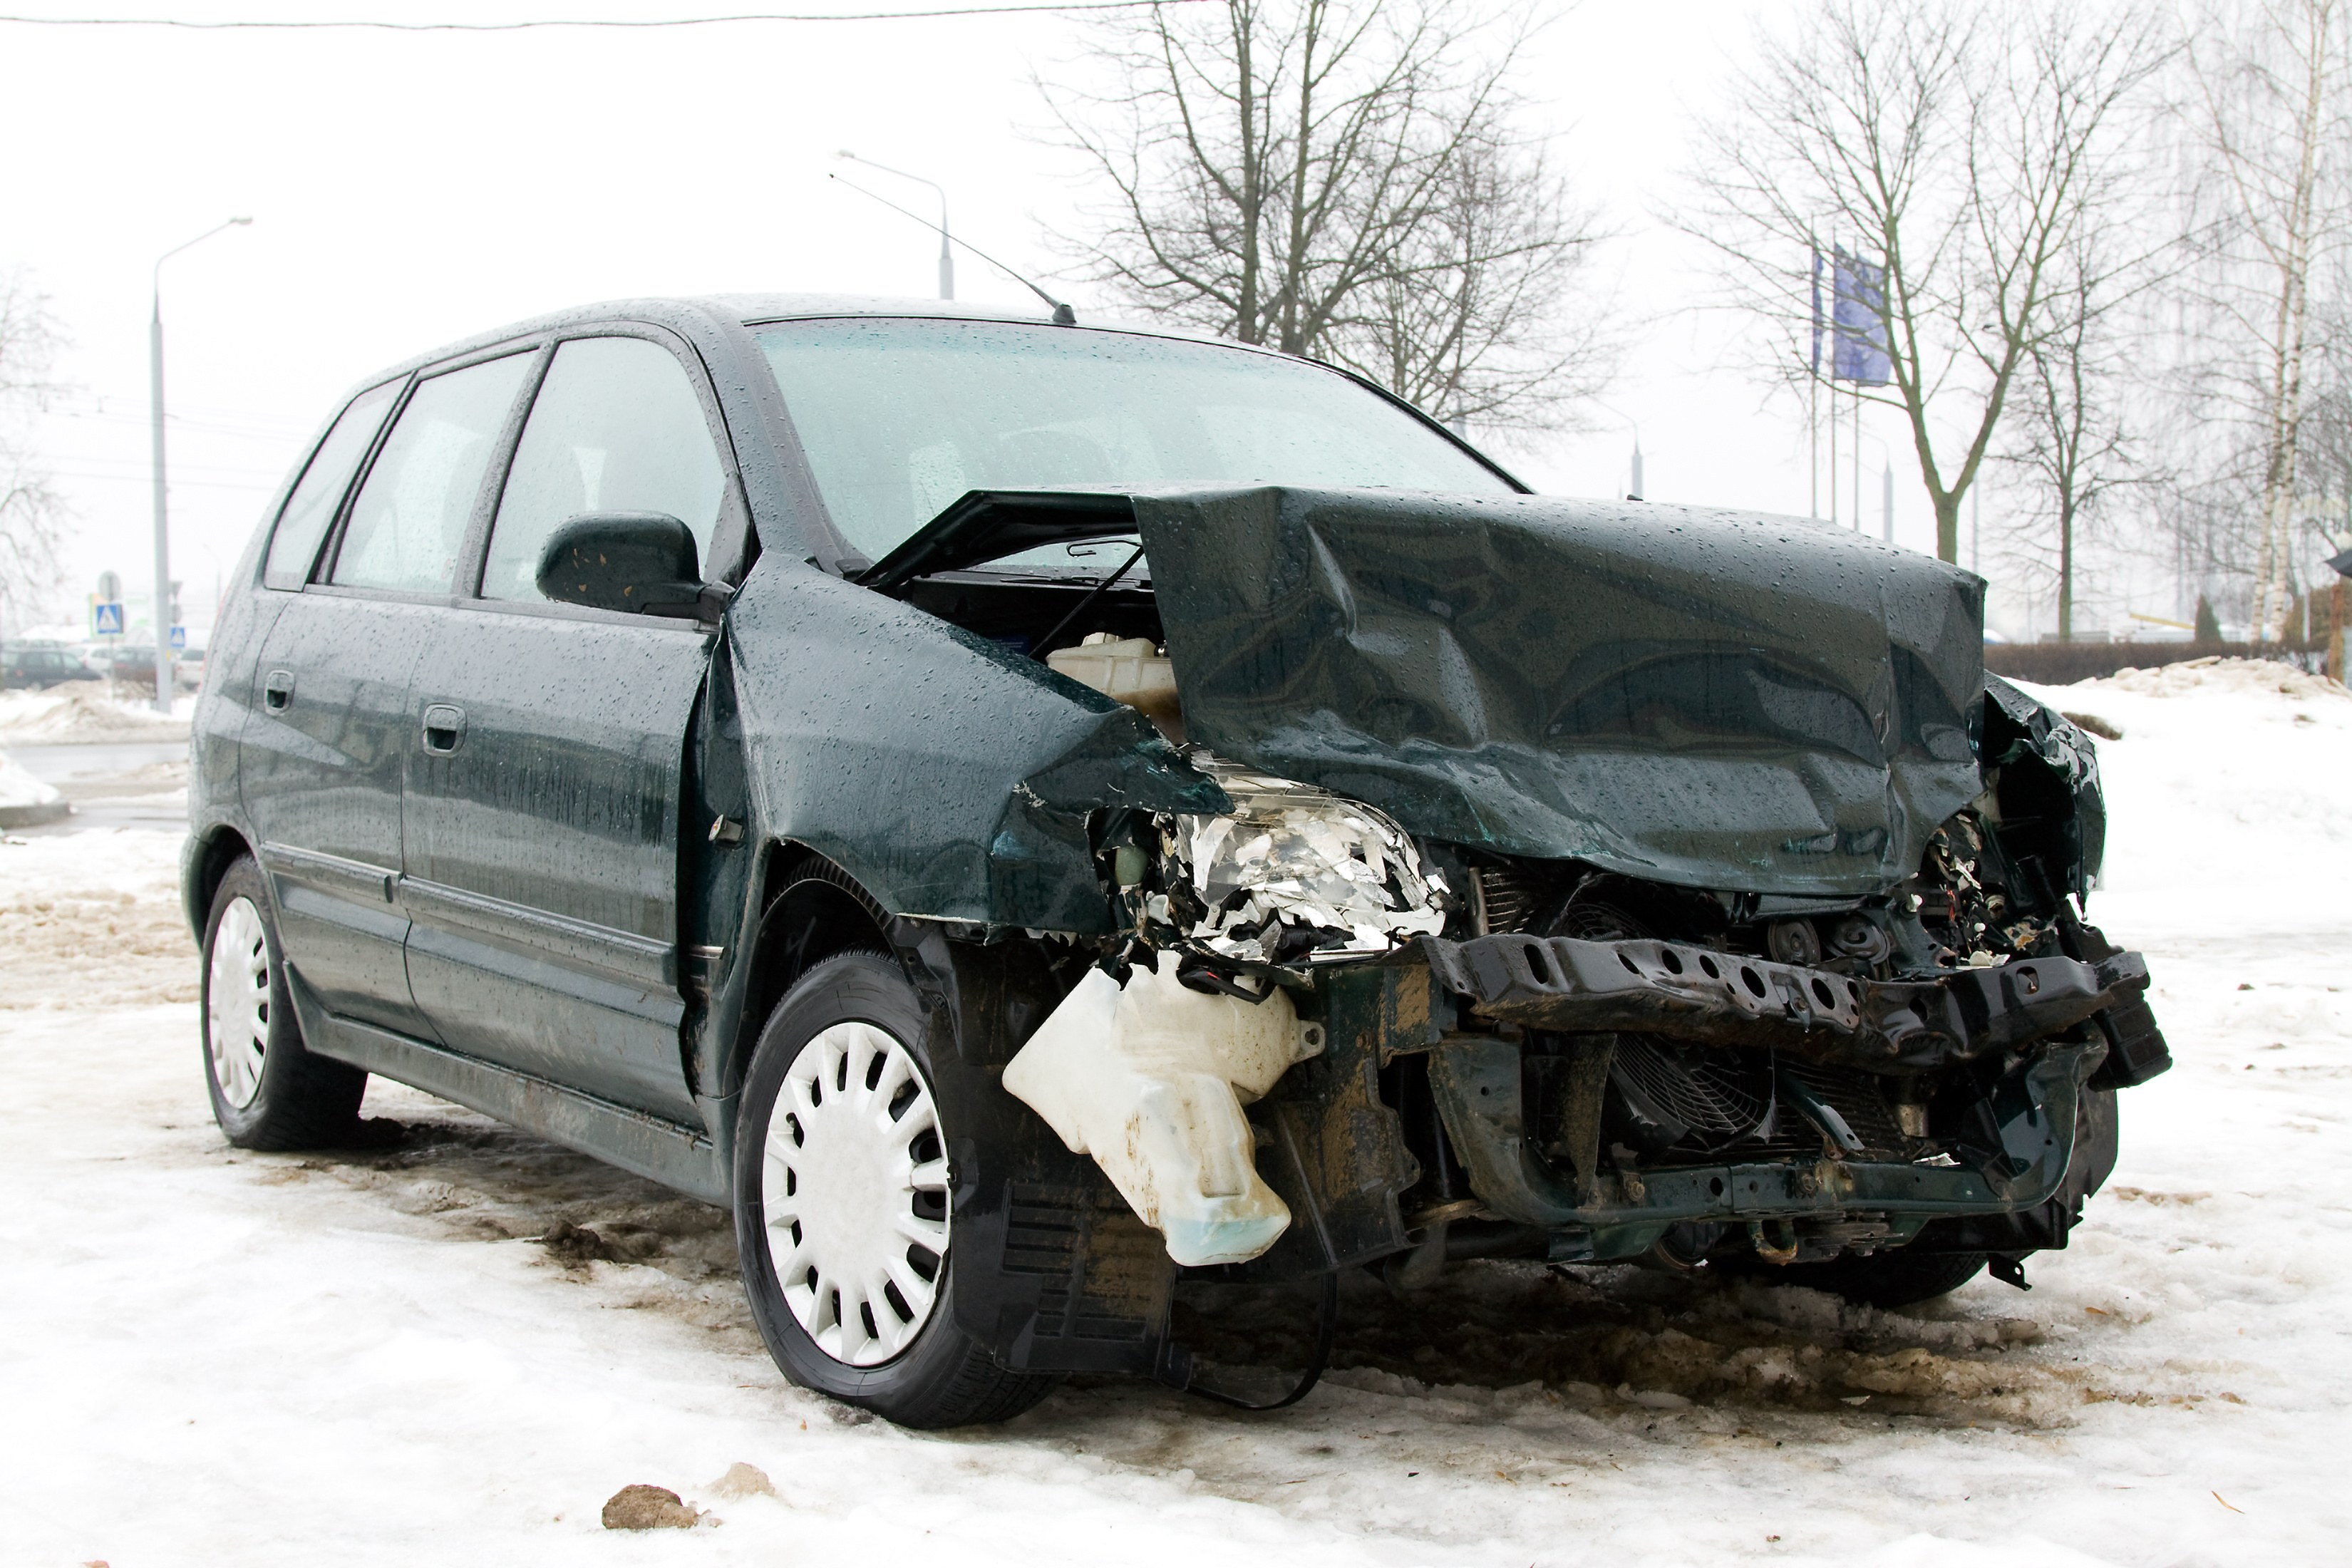 How long will it take for my car accident claim to settle? - Orzoff